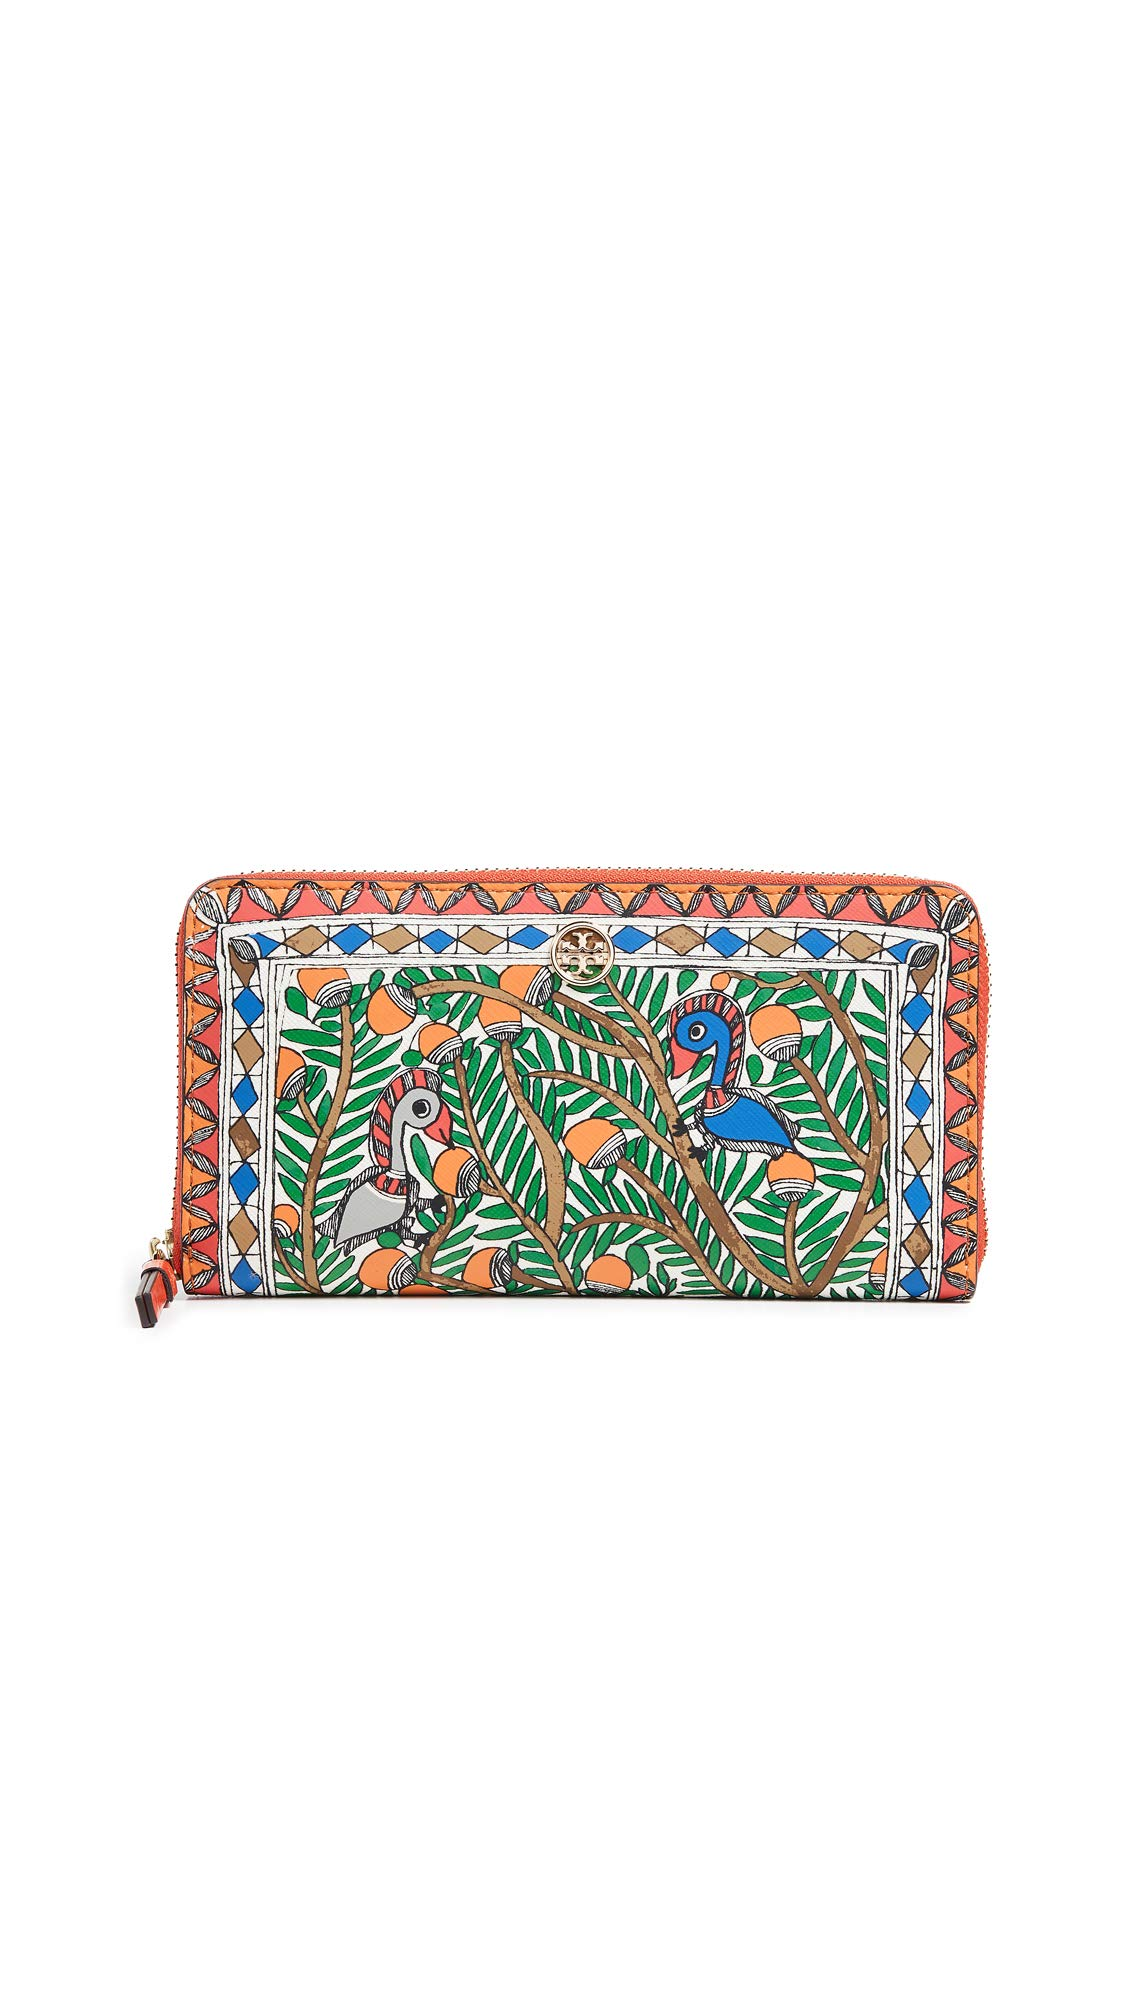 Tory Burch Women's Robinson Printed Zip Continental Wallet, Something wild, One Size